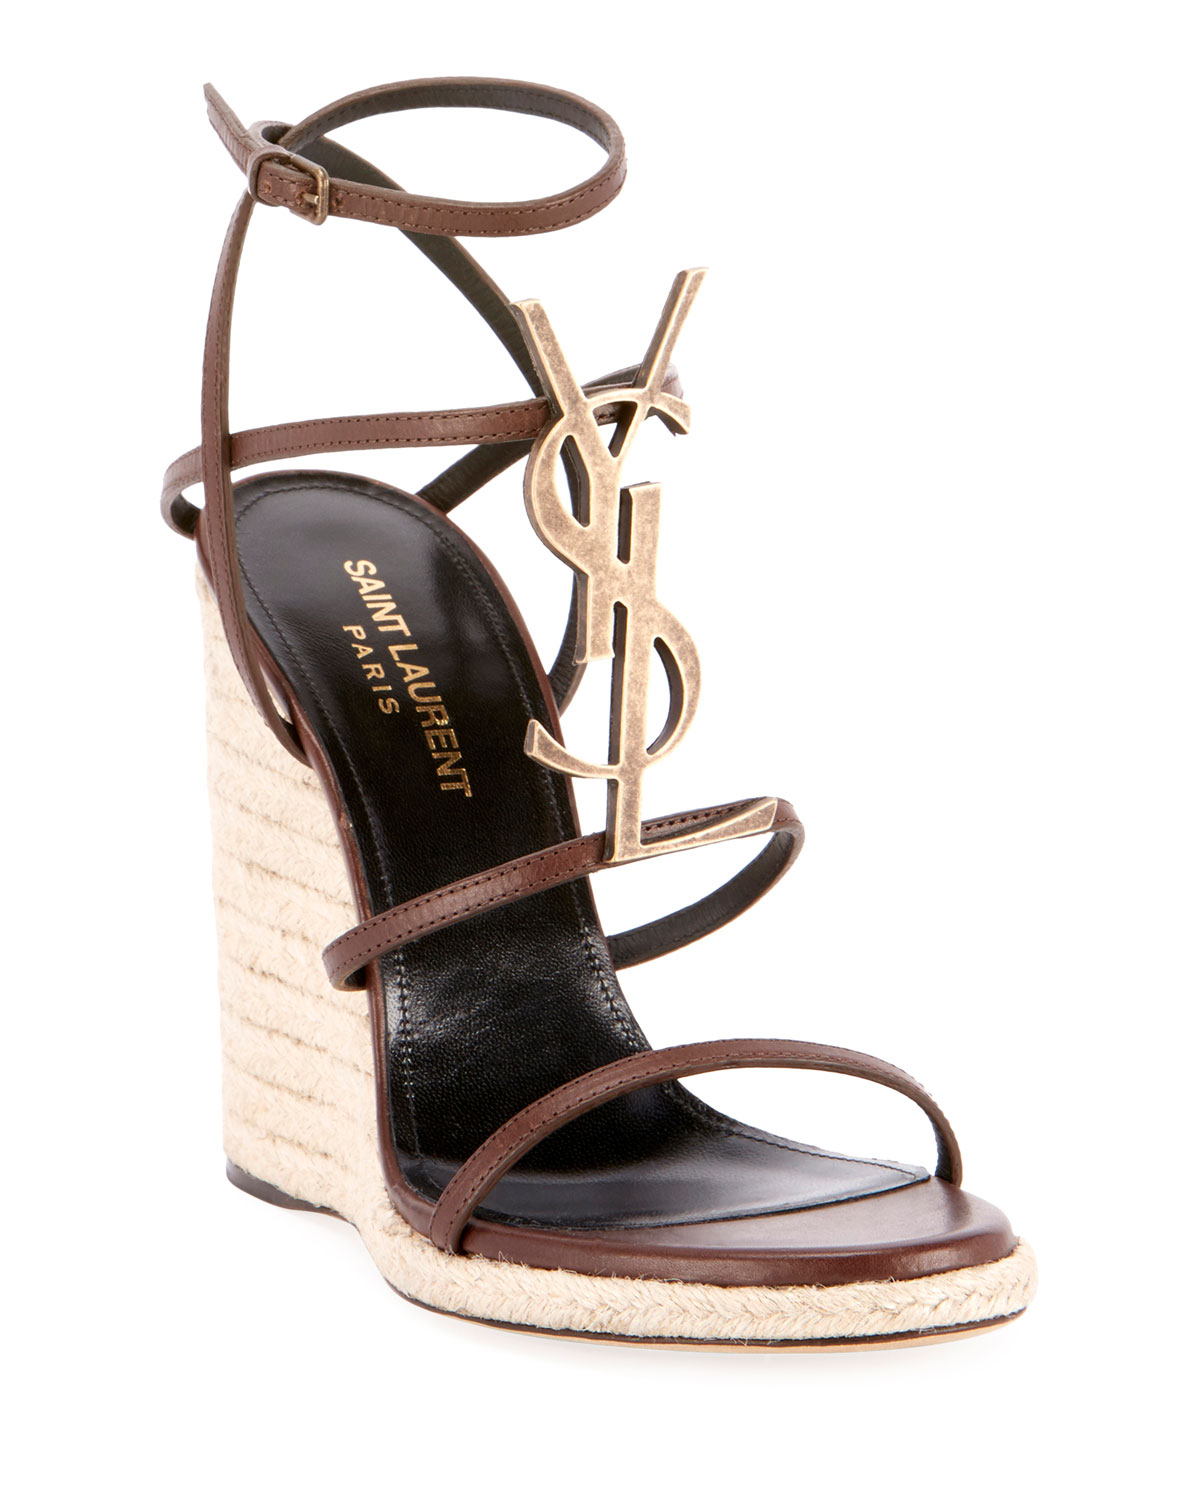 6d4599ee054 Cassandra Wedge Espadrilles with Golden YSL Logo